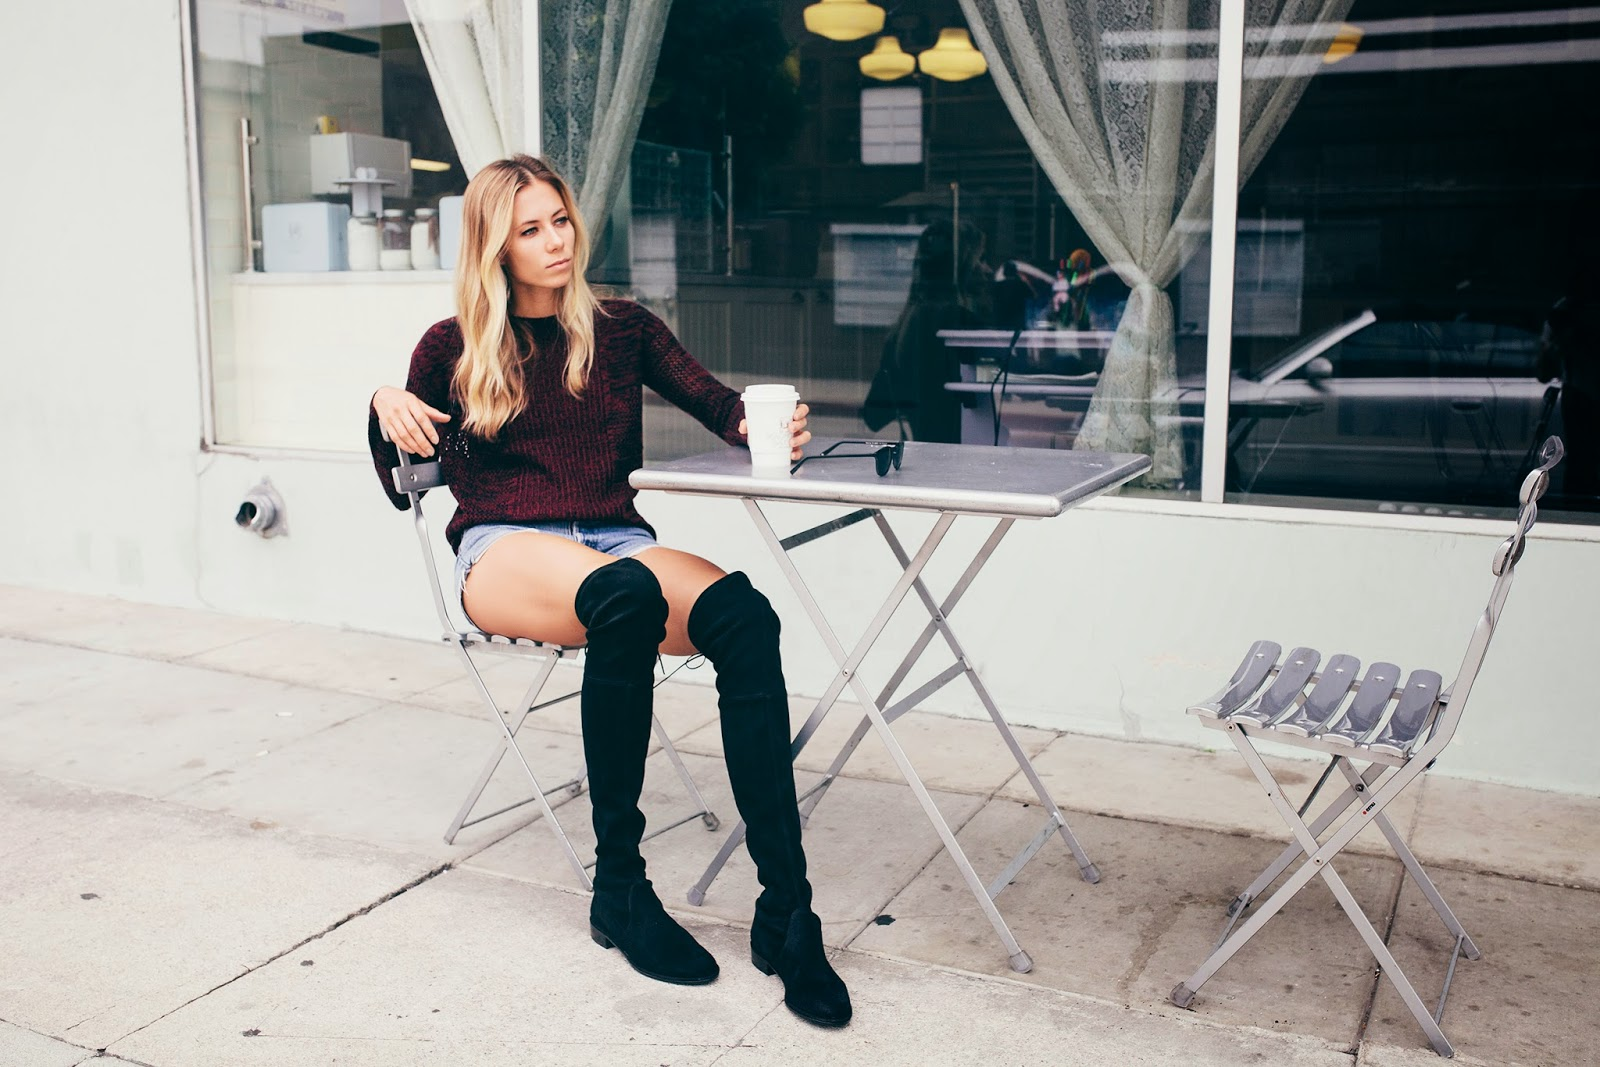 abf7ea0c03e Get a Gorgeous Look with Stuart Weitzman 5050 Boots